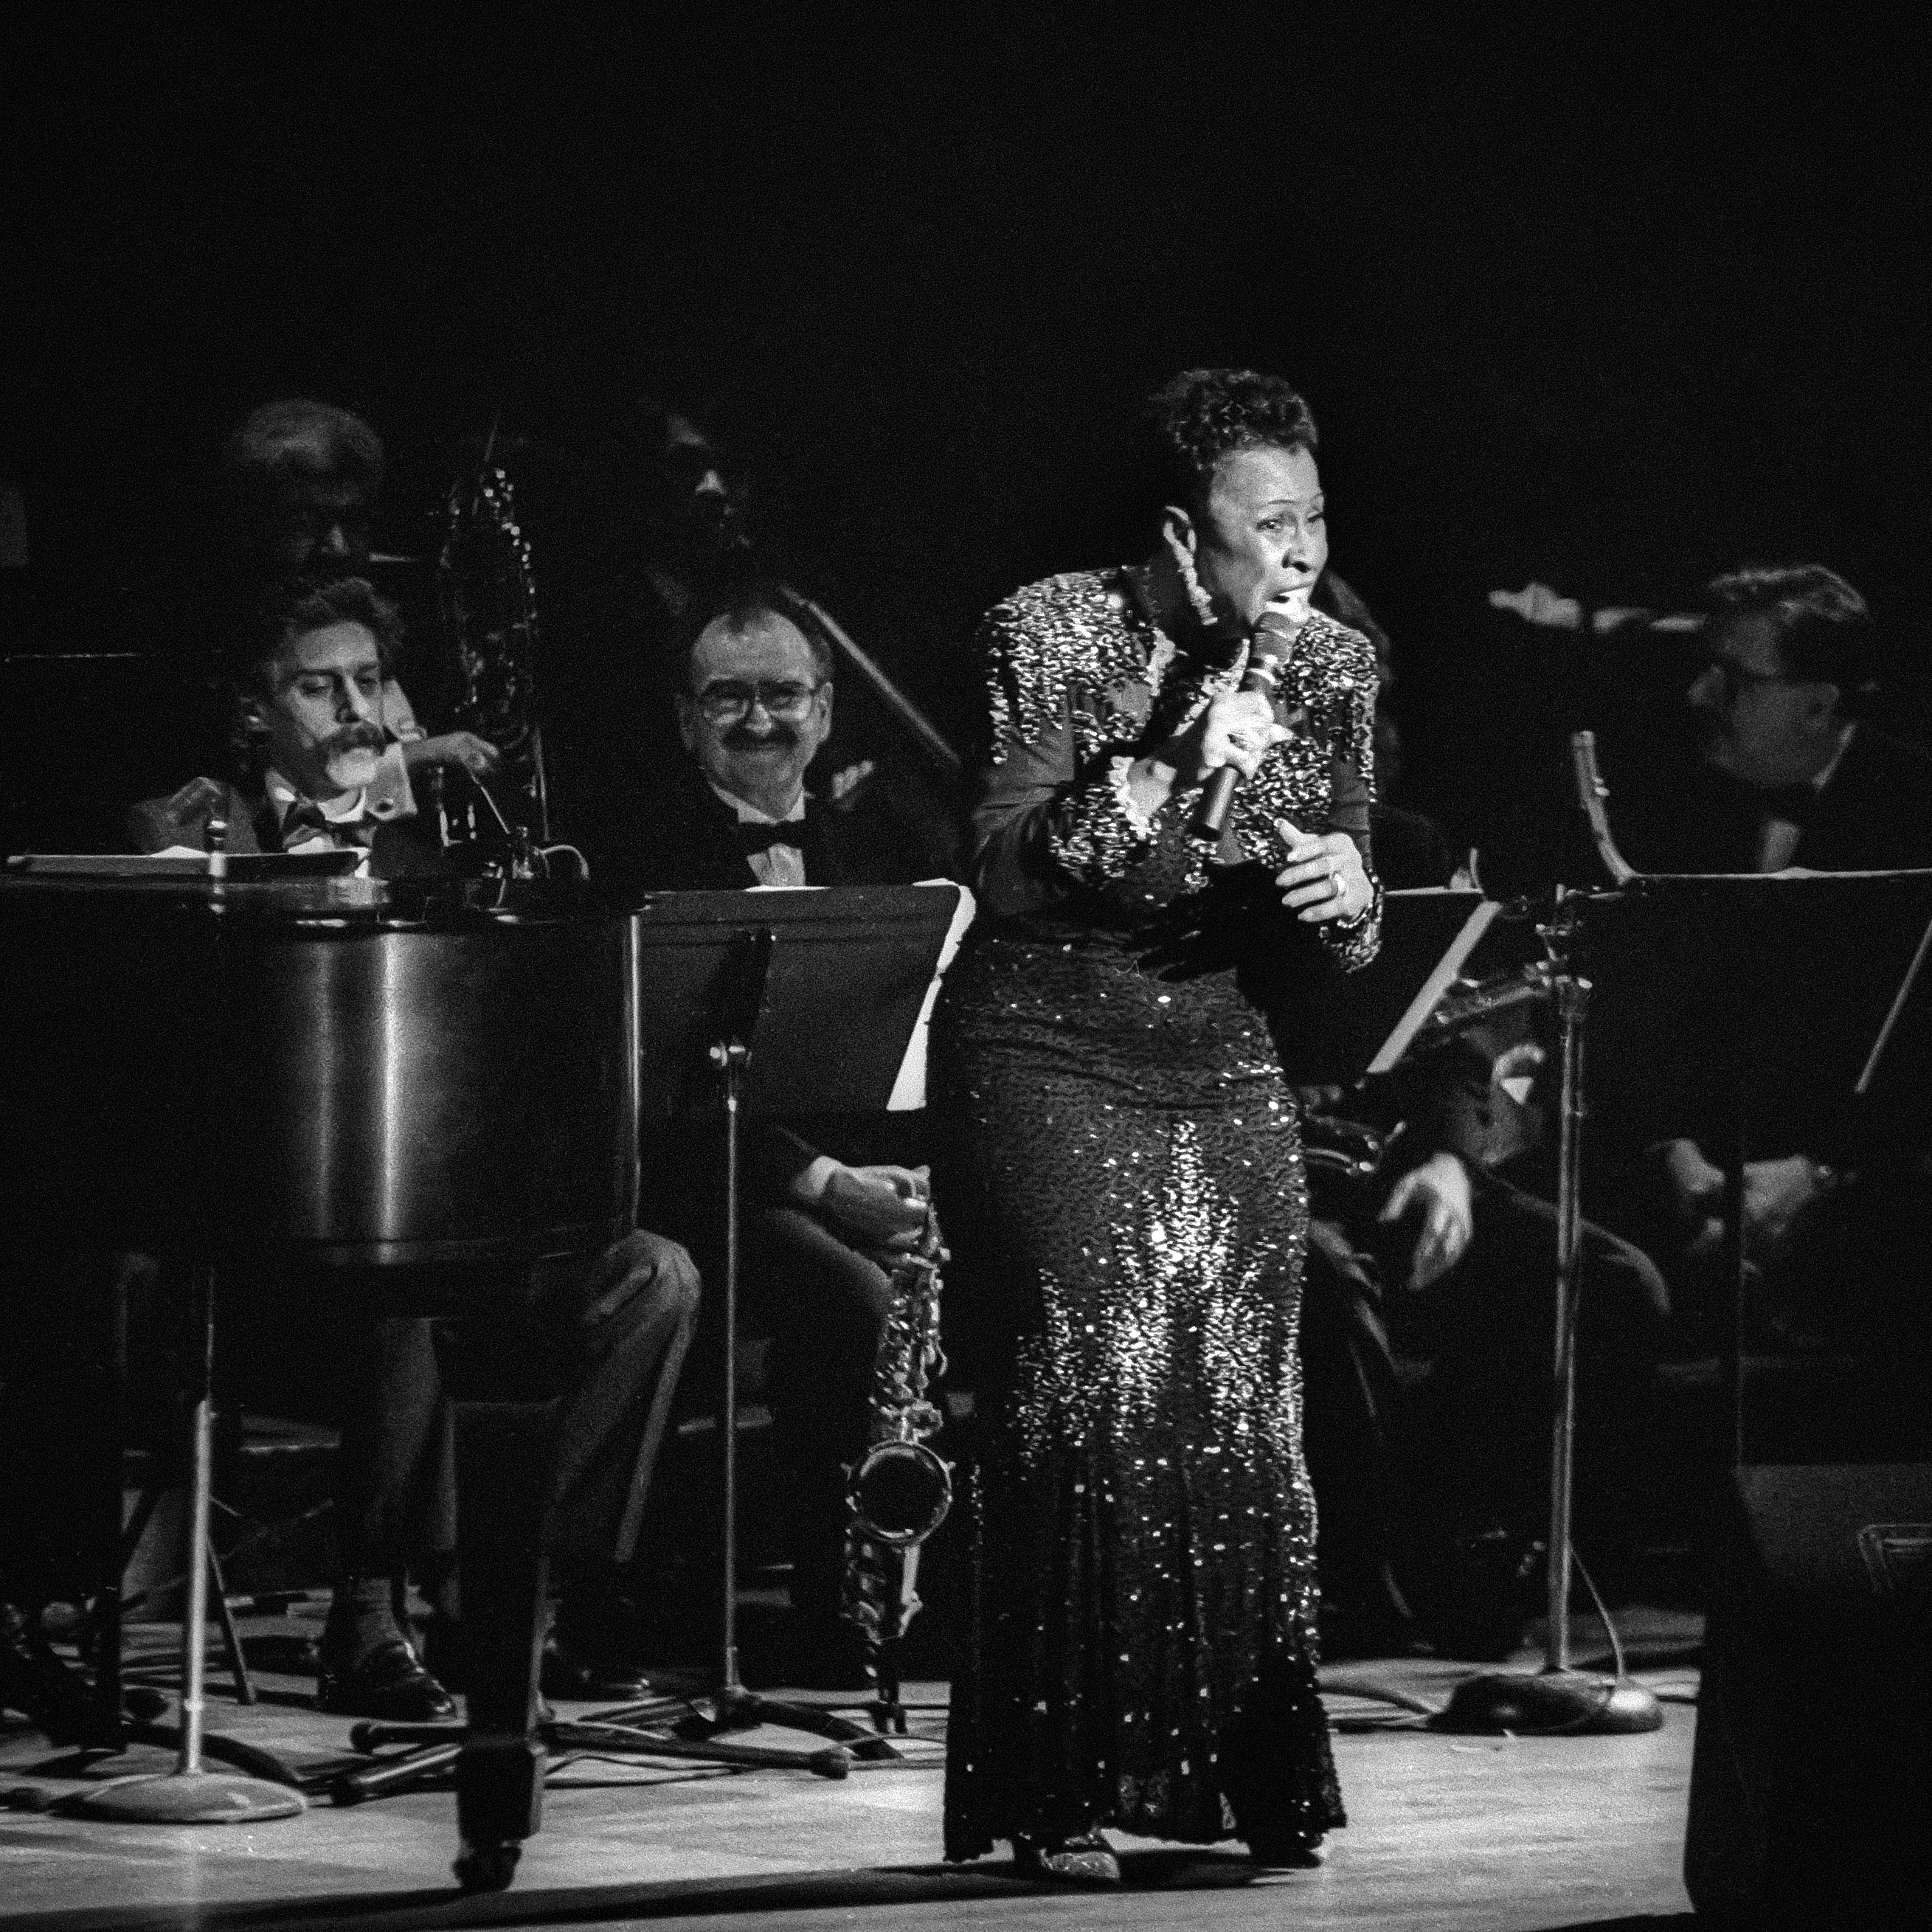 American jazz vocalist Betty Carter (born Lillie Mae Jones, 1929-1998) performs at her Jazz at Lincoln Center 'Big Band With Strings--The Music Never Stops' concert at Alice Tully Hall at Lincoln Center, New York, New York, Saturday, March 28, 1992. CREDIT: Photograph © 1992 Jack Vartoogian/FrontRowPhotos. ALL RIGHTS RESERVED.